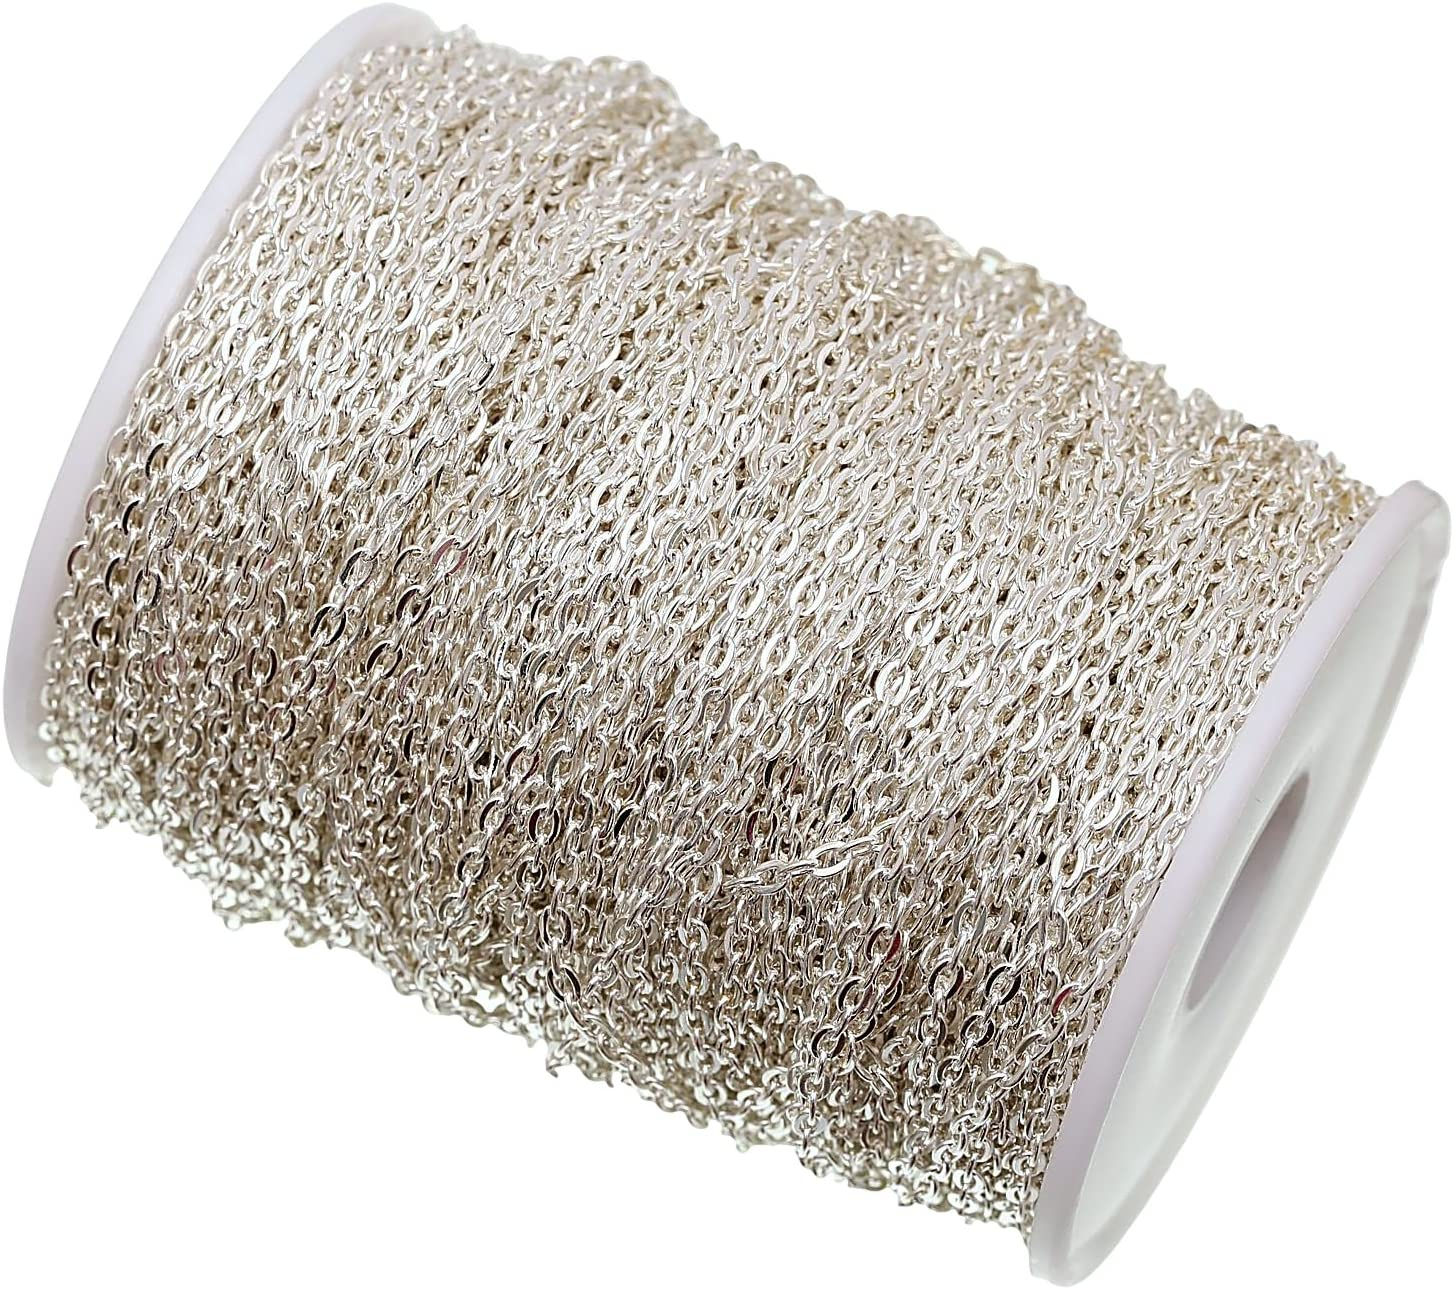 Charm Buddy 10 Metres 4.5mm x 3mm Cable Chains Findings Silver Jewellery Making Beading Stringing